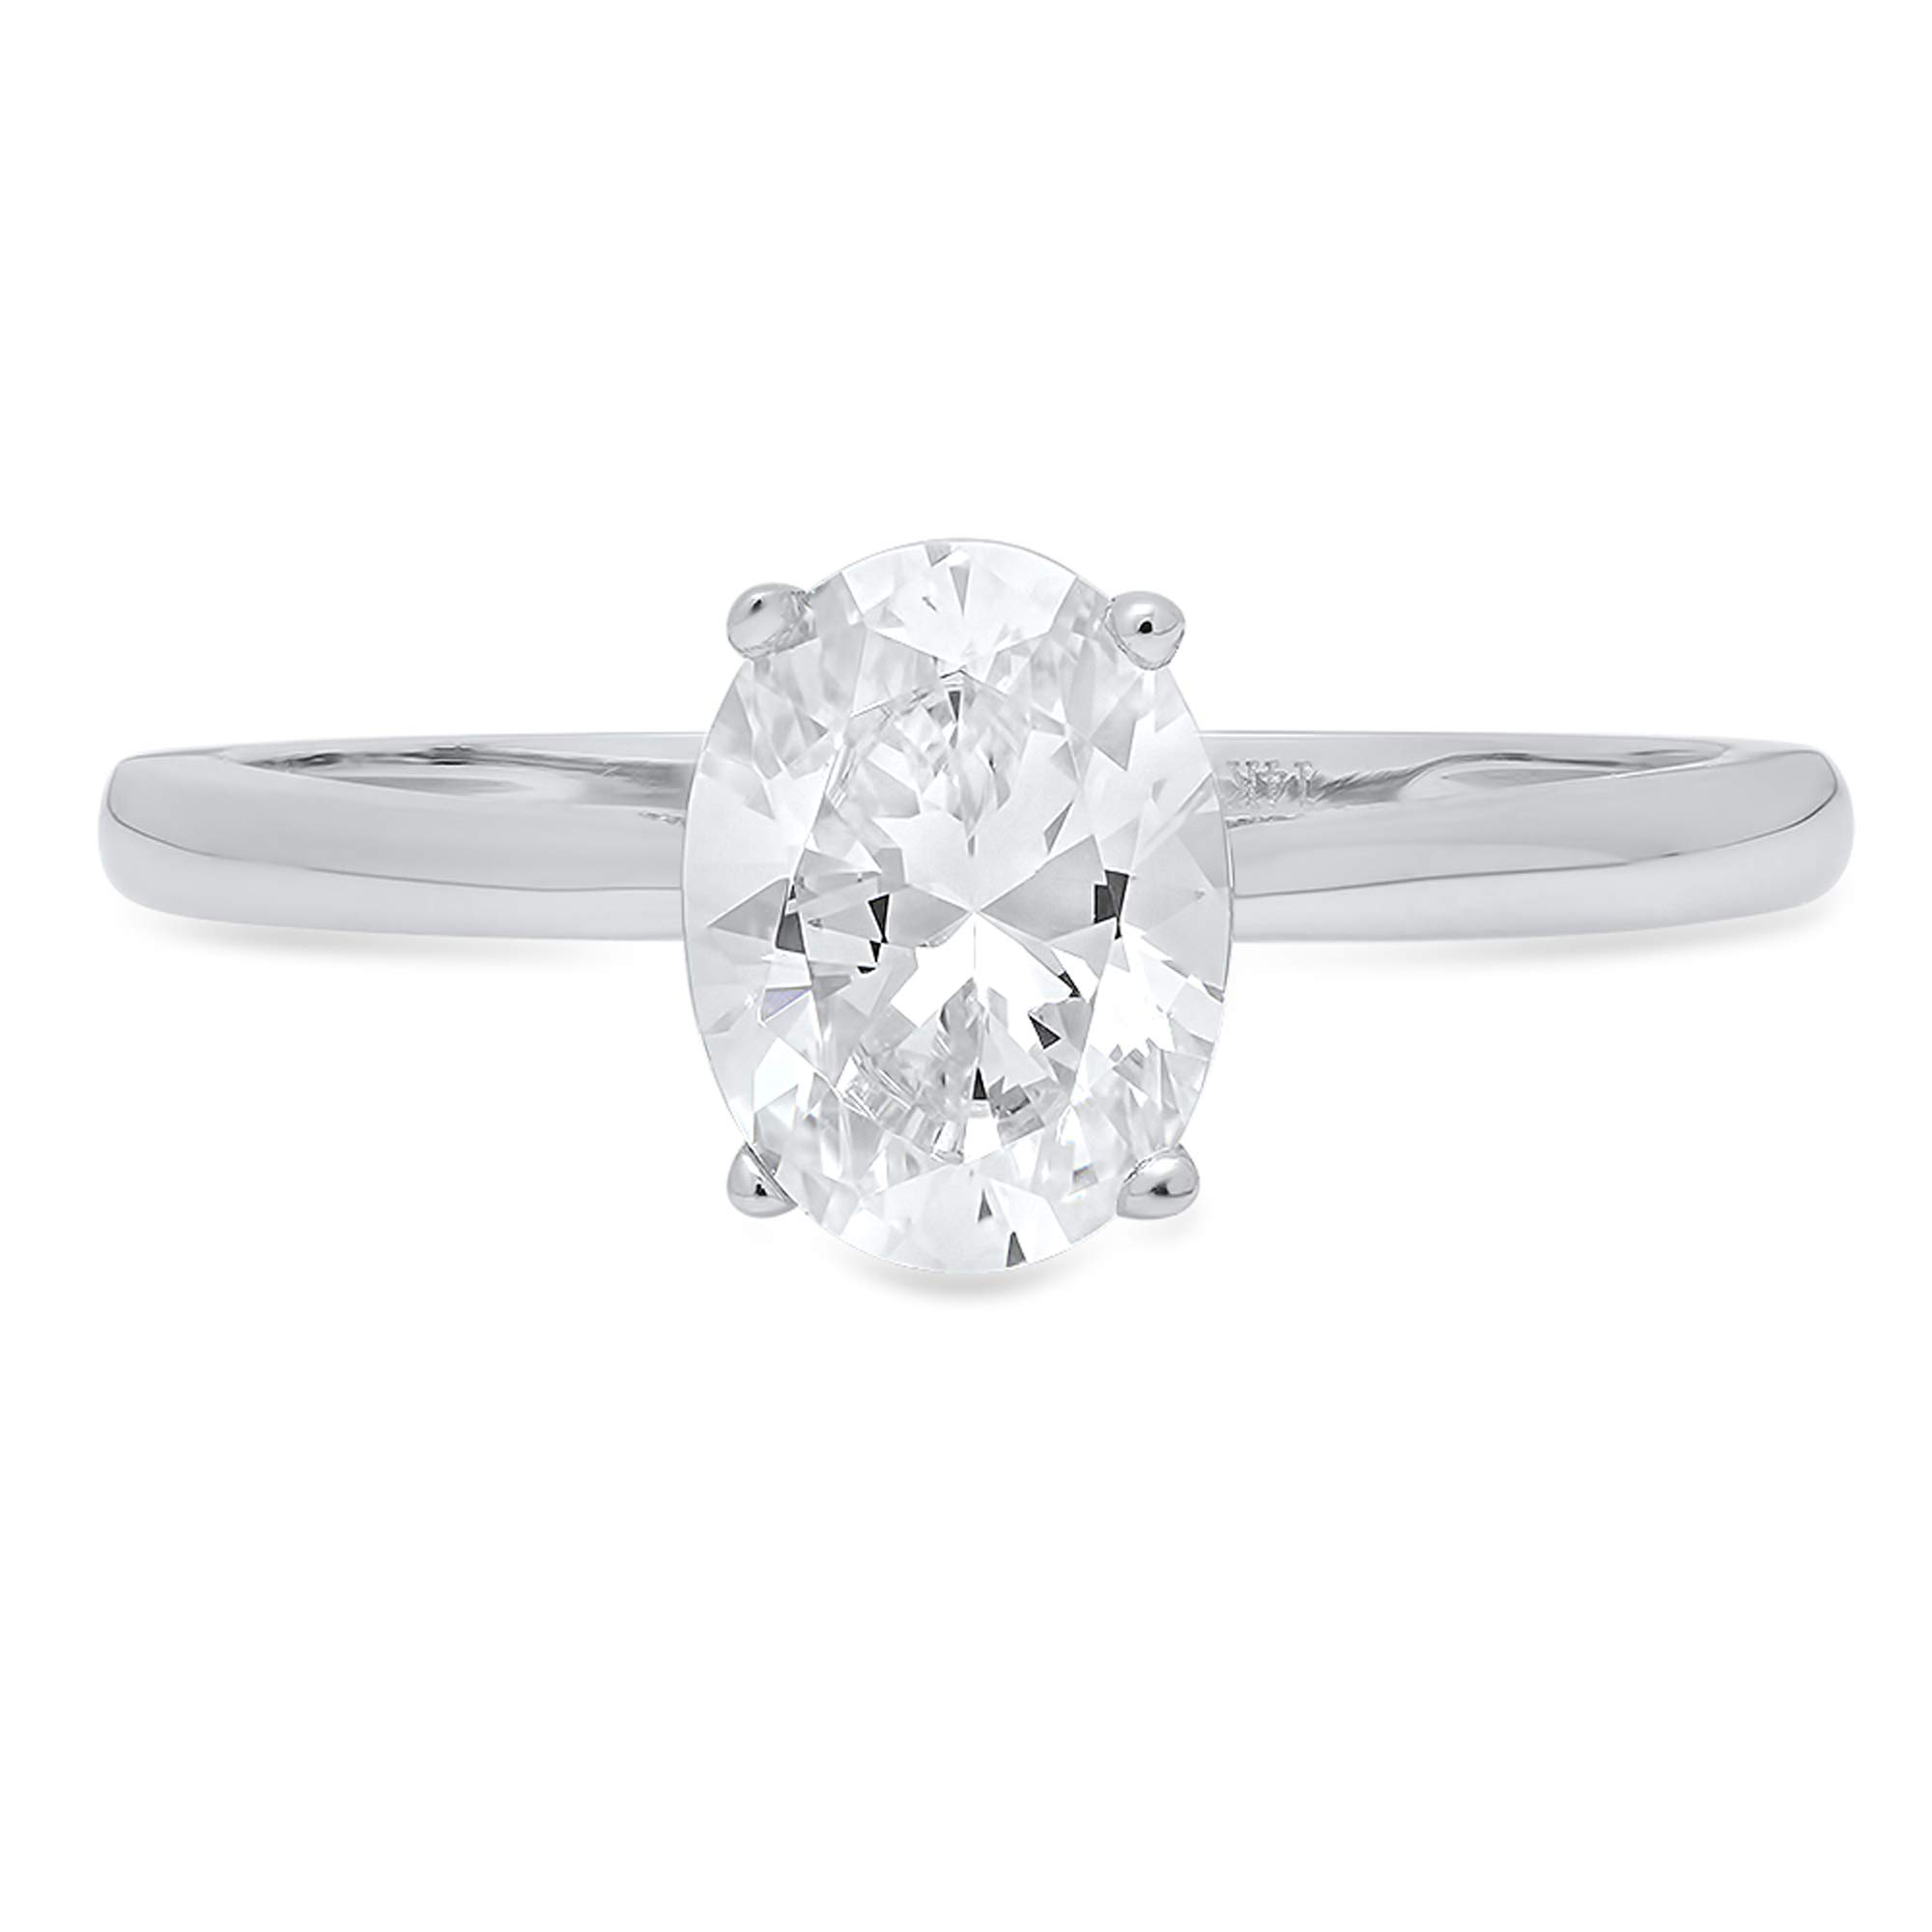 1.0 ct Brilliant Oval Cut Solitaire Highest Quality Lab Created White Sapphire Ideal VVS1 D 4-Prong Engagement Wedding Bridal Promise Anniversary Ring Solid Real 14k White Gold for Women